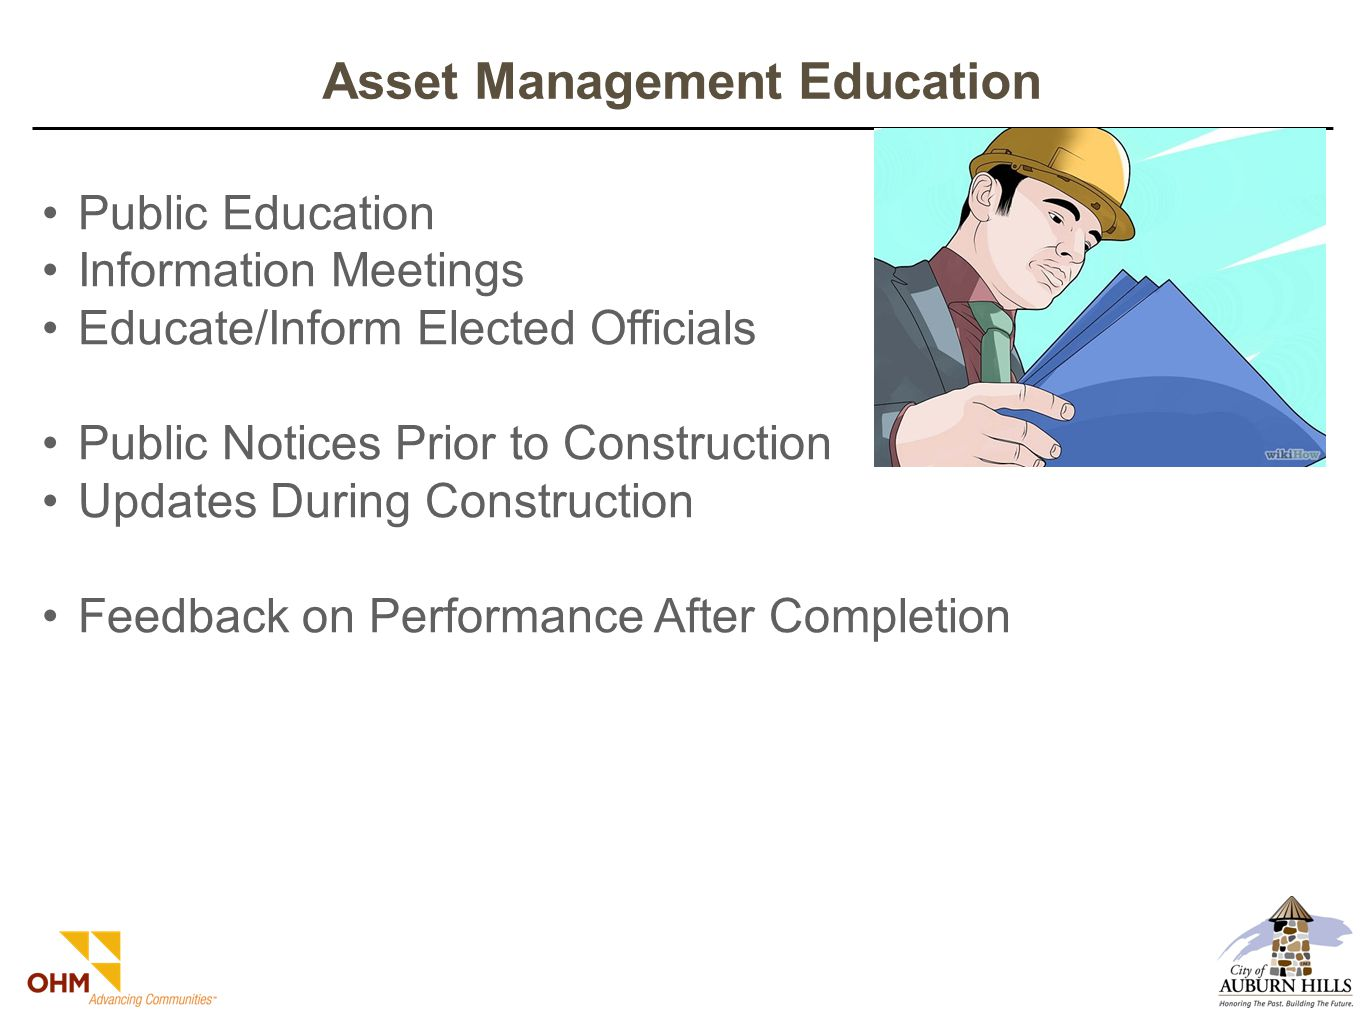 Asset Management Education Public Education Information Meetings Educate/Inform Elected Officials Public Notices Prior to Construction Updates During Construction Feedback on Performance After Completion